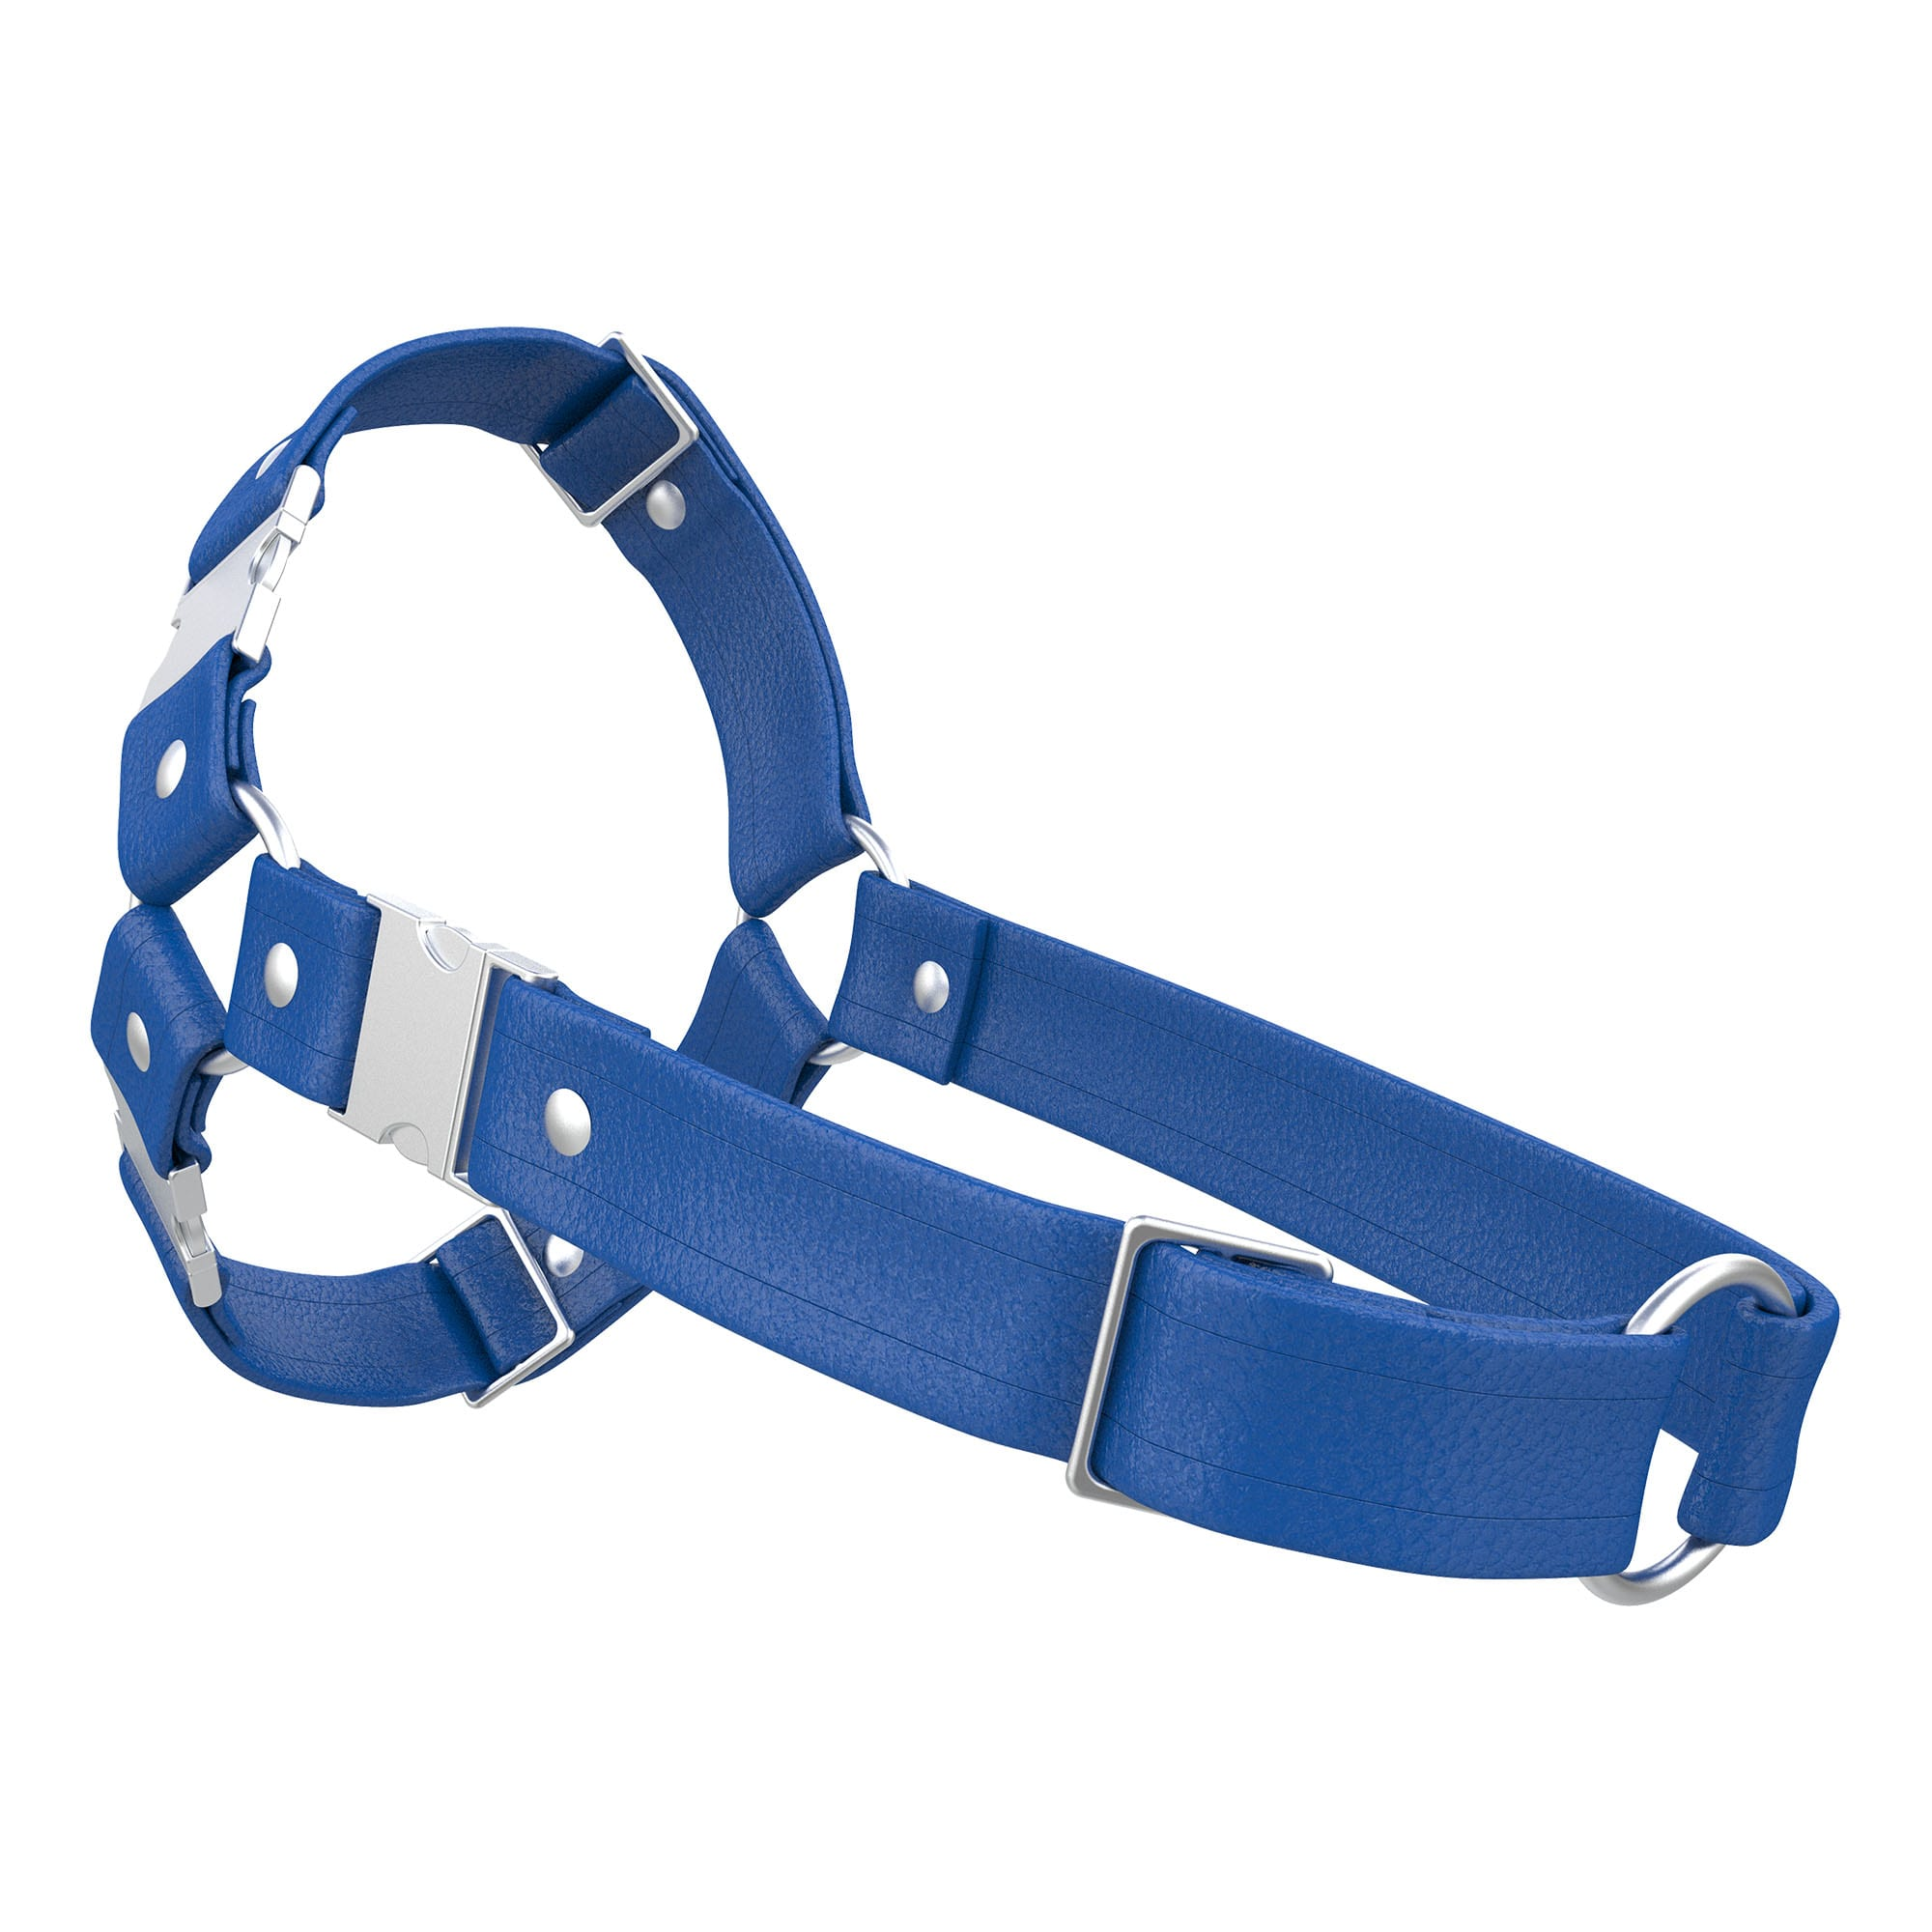 One Size Spartan Harness – Standard Leather – Blue - Silver Metal Fittings